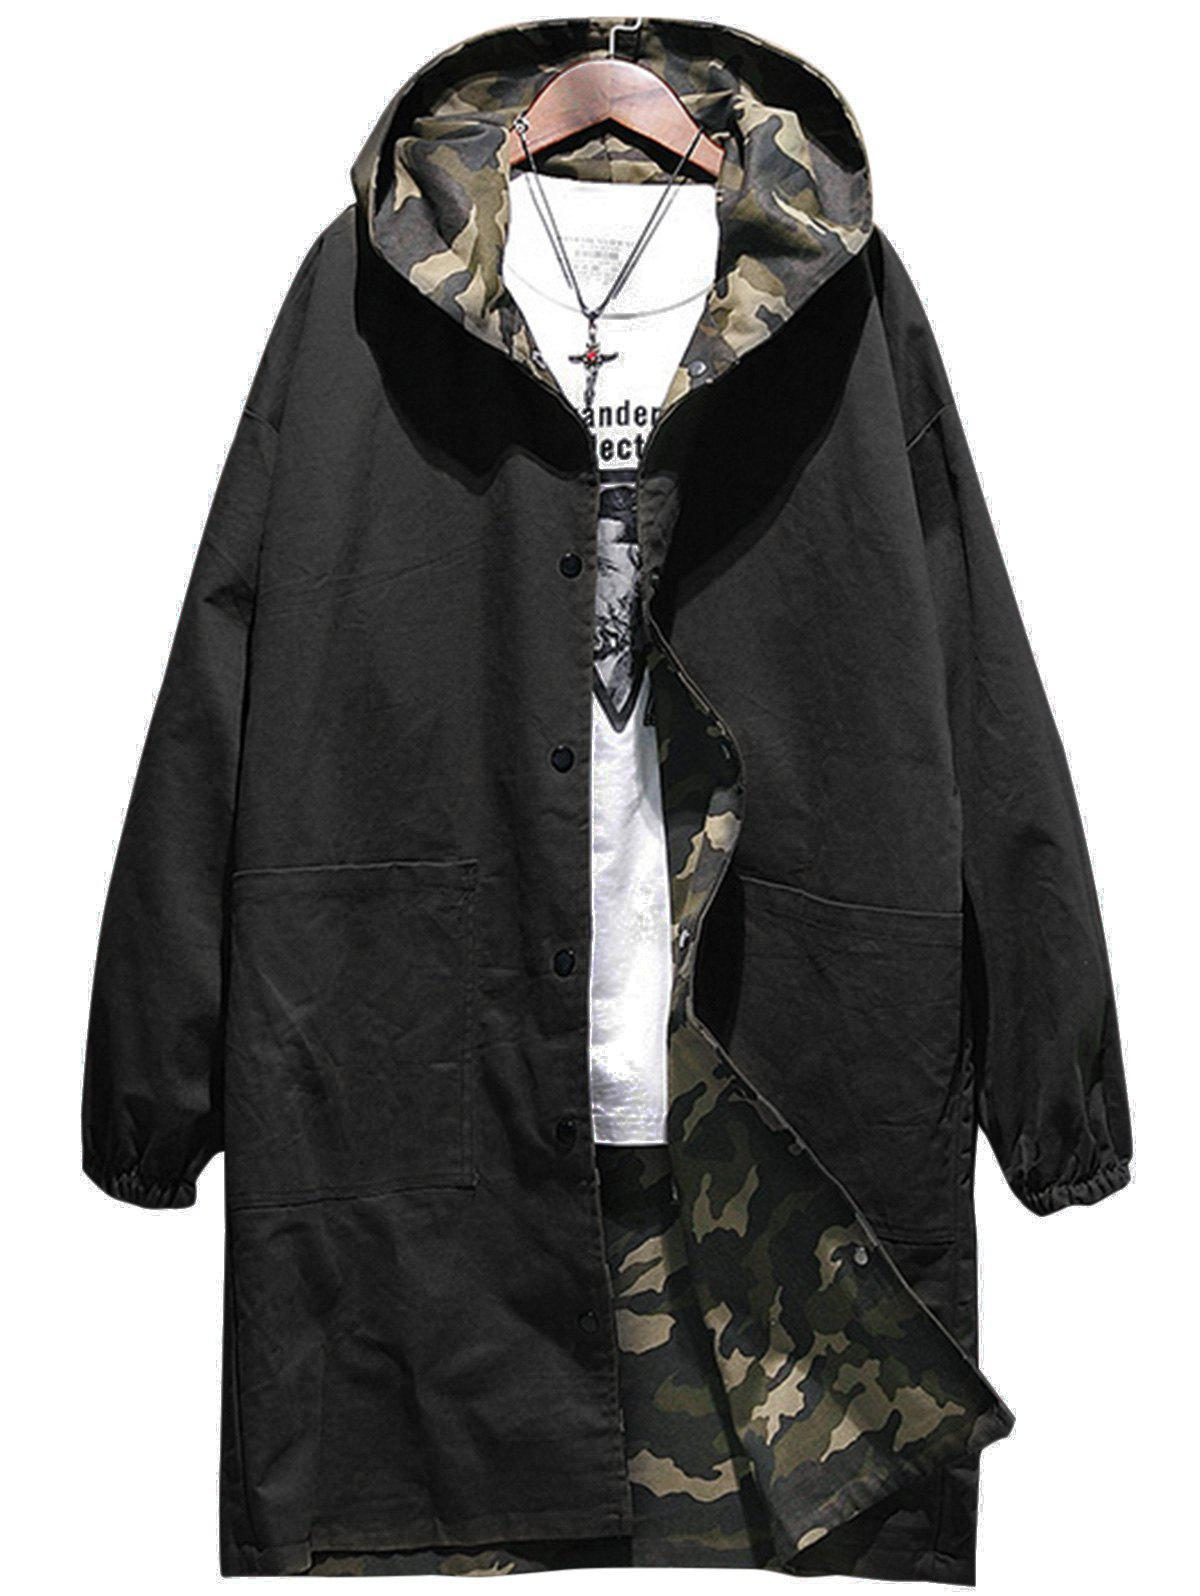 Reversible Style Hooded Camouflage Pockets Coat 230641208